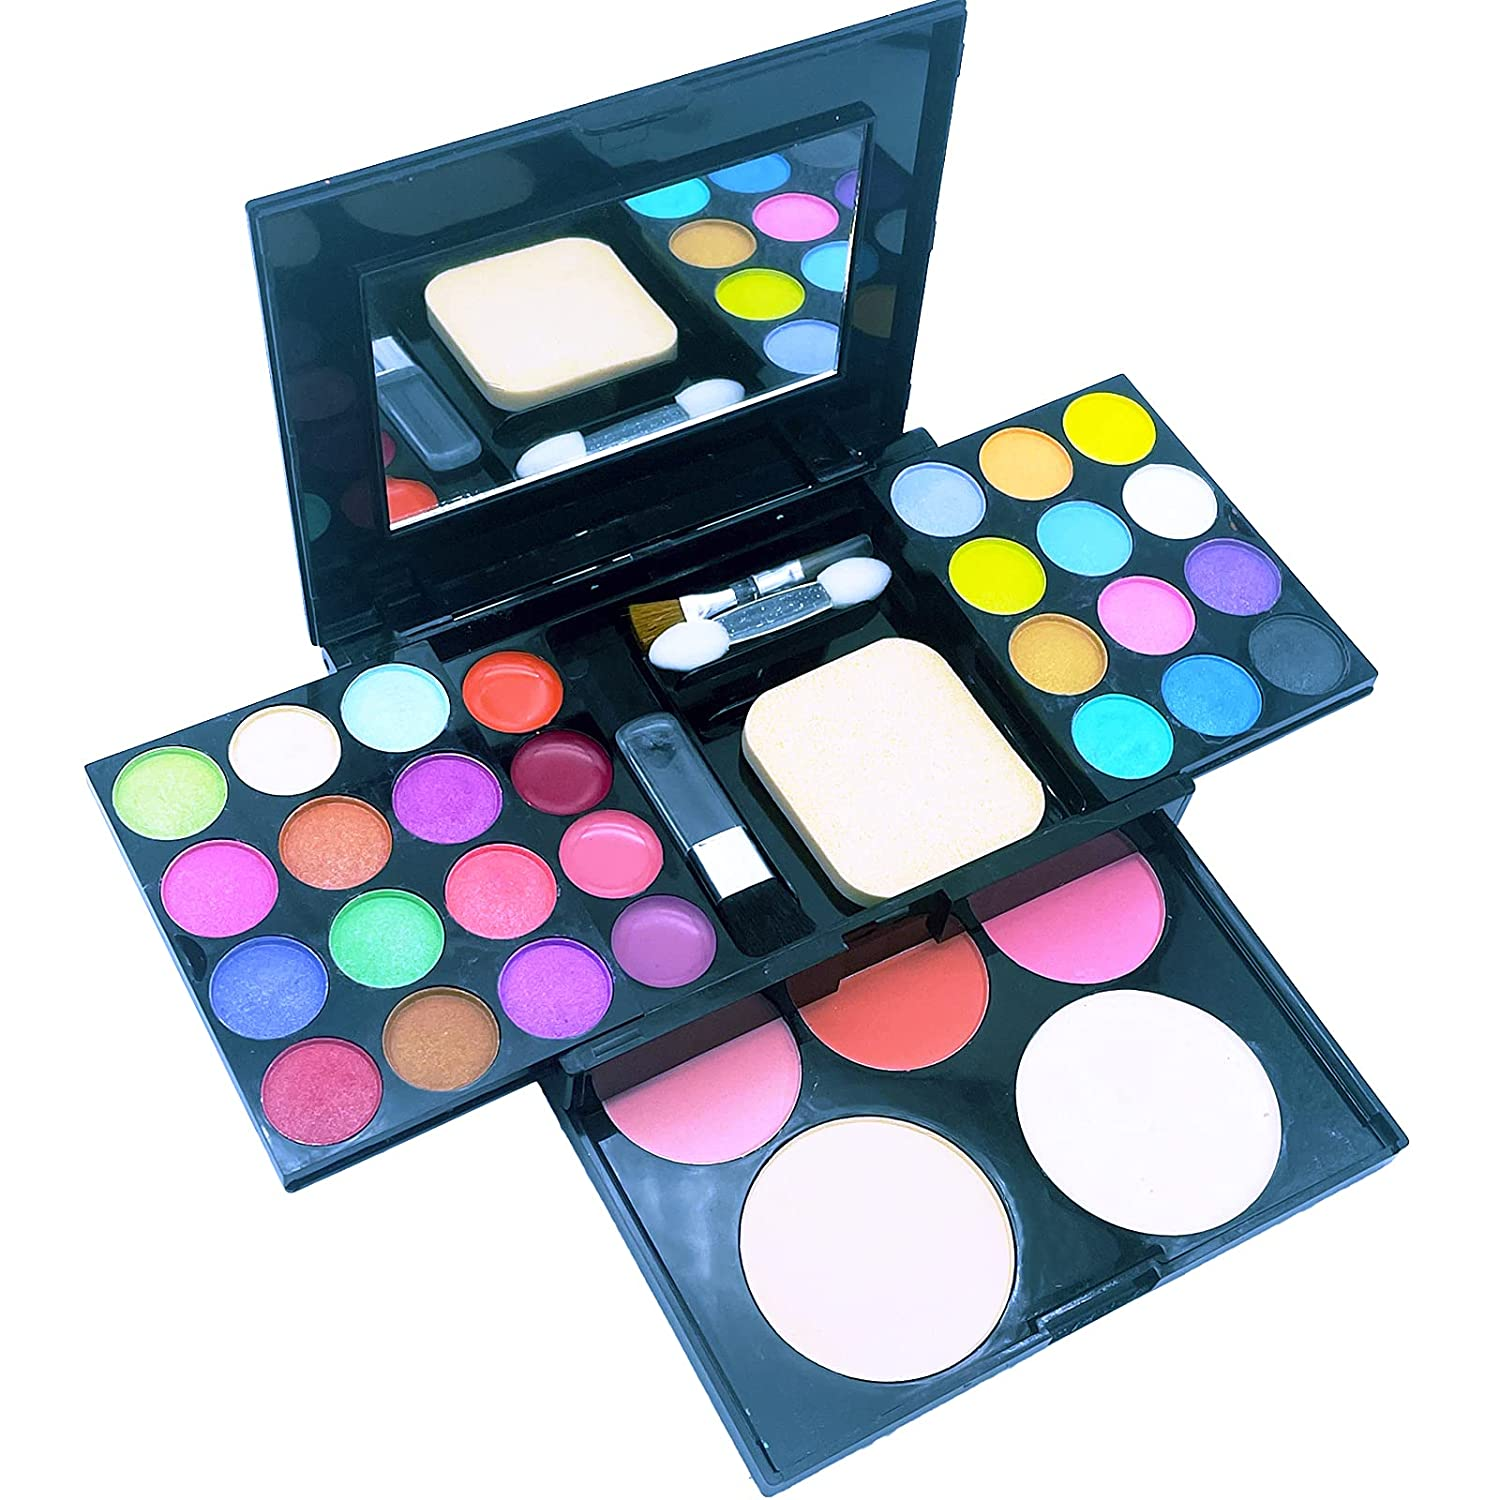 Eye Makeup Palette Set, 39 Bright Colors Matter and Shimmer Lip Gloss Blush Brushes, Colorful Long Lasting Blendable Professional Waterproof Eye Shadow Palette for Girls Festival Birthday Gift